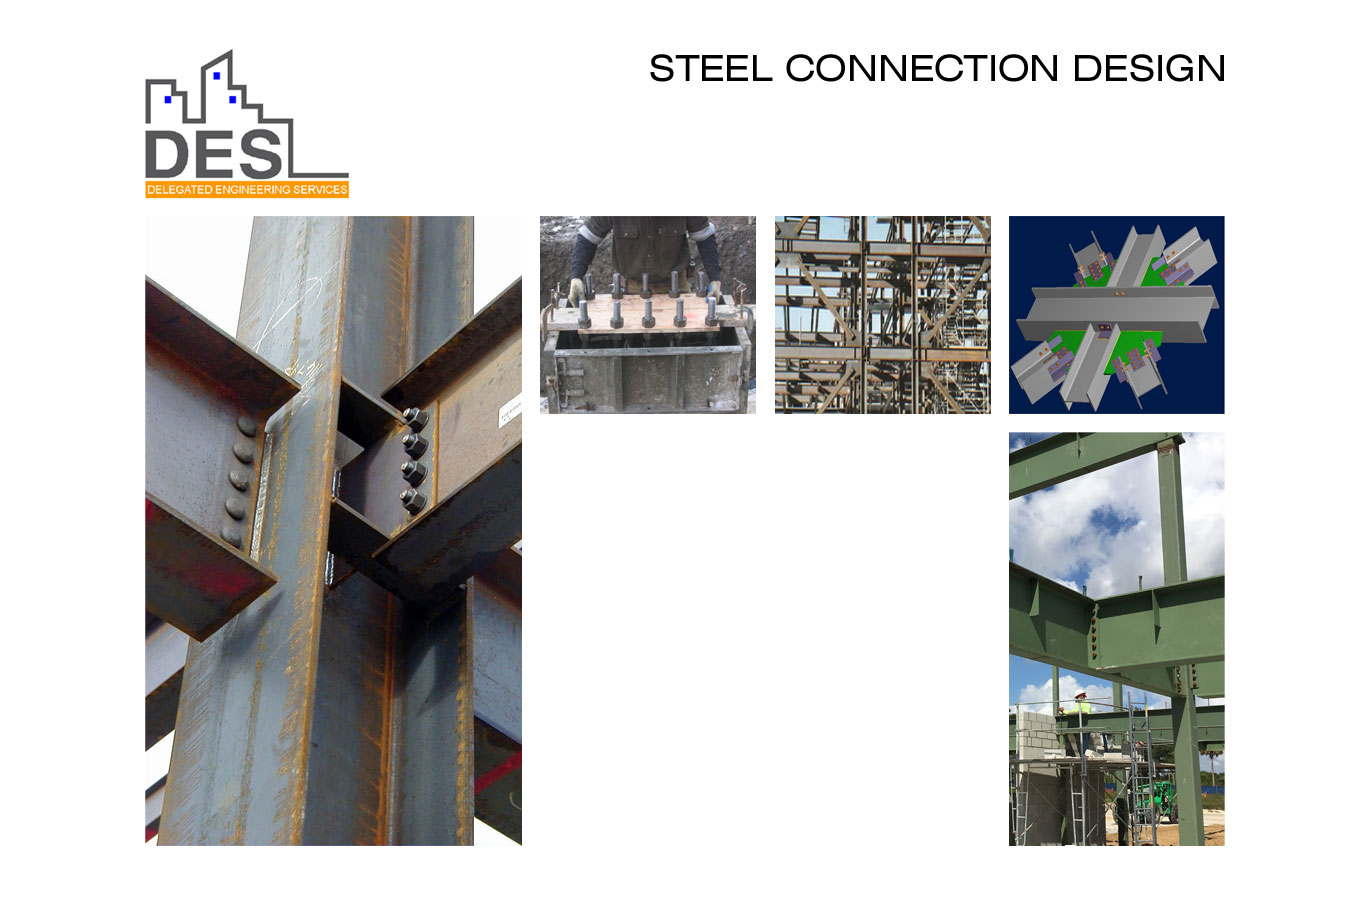 Loading DES Steel Connection Design...